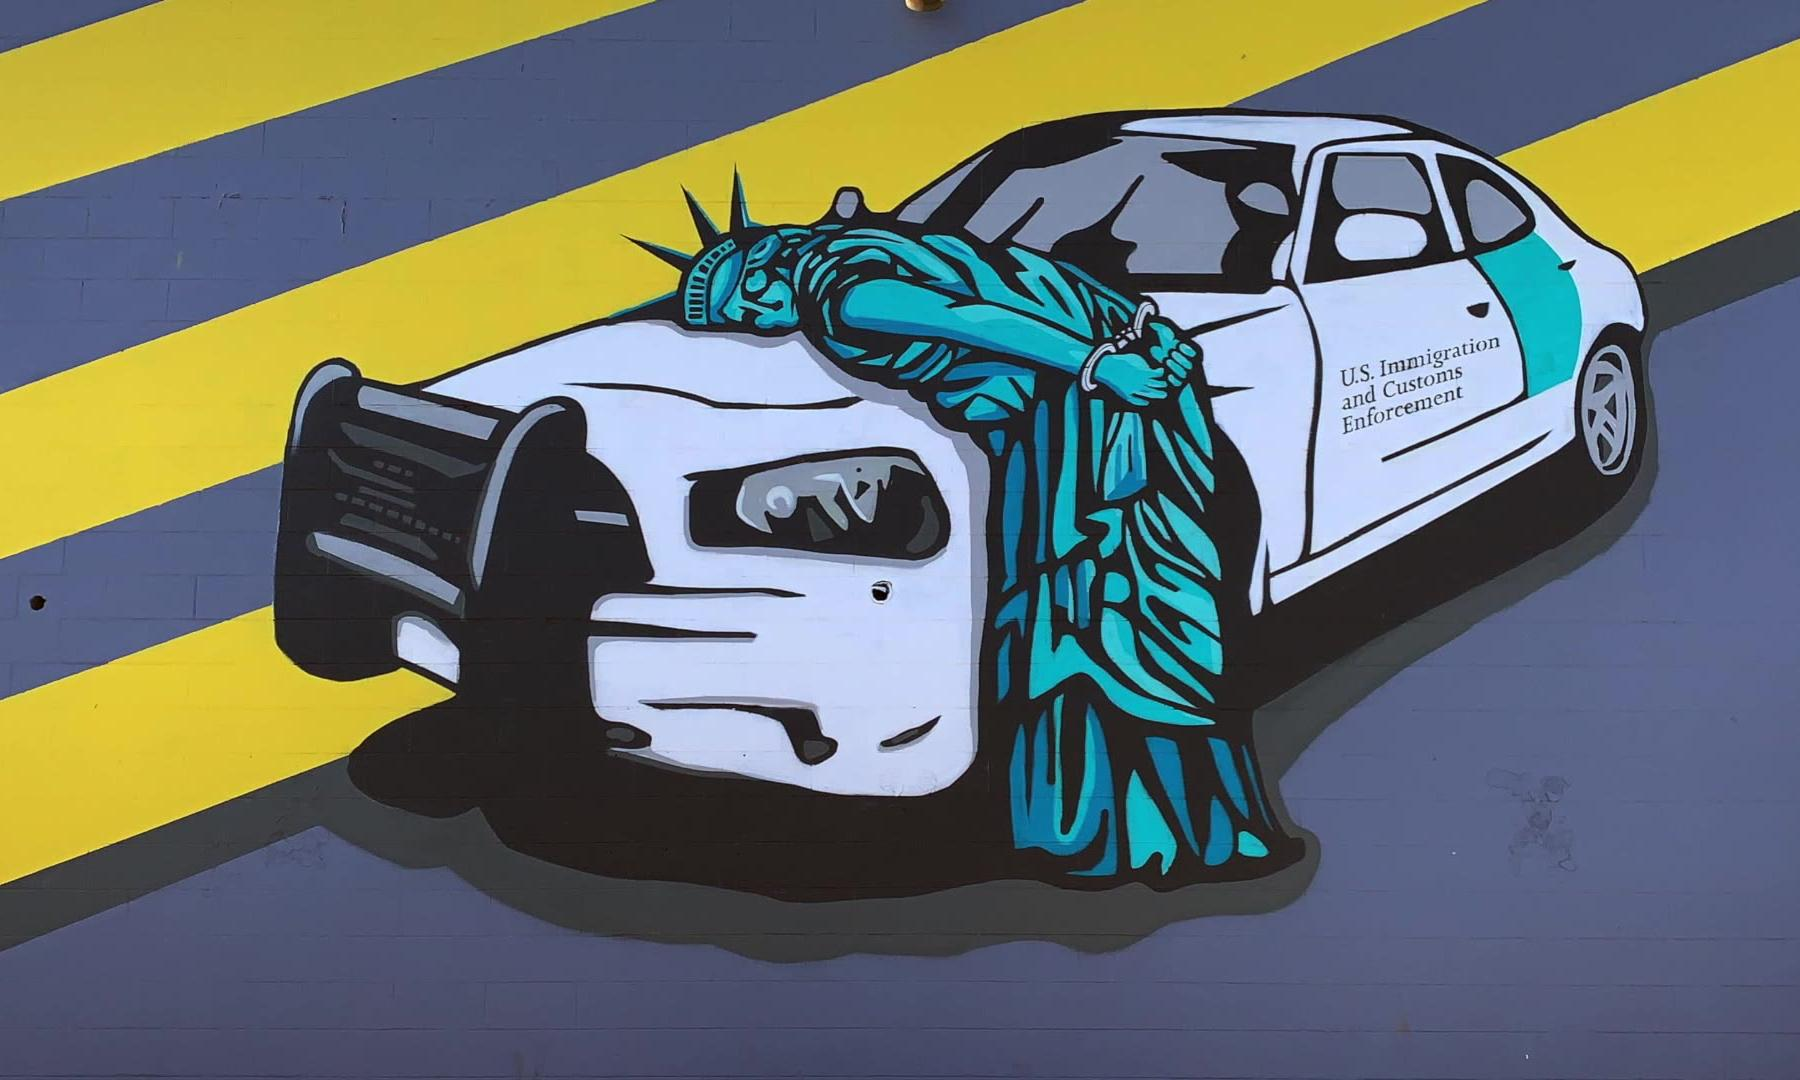 Statue of Liberty shown cuffed and arrested by immigration officials in new mural